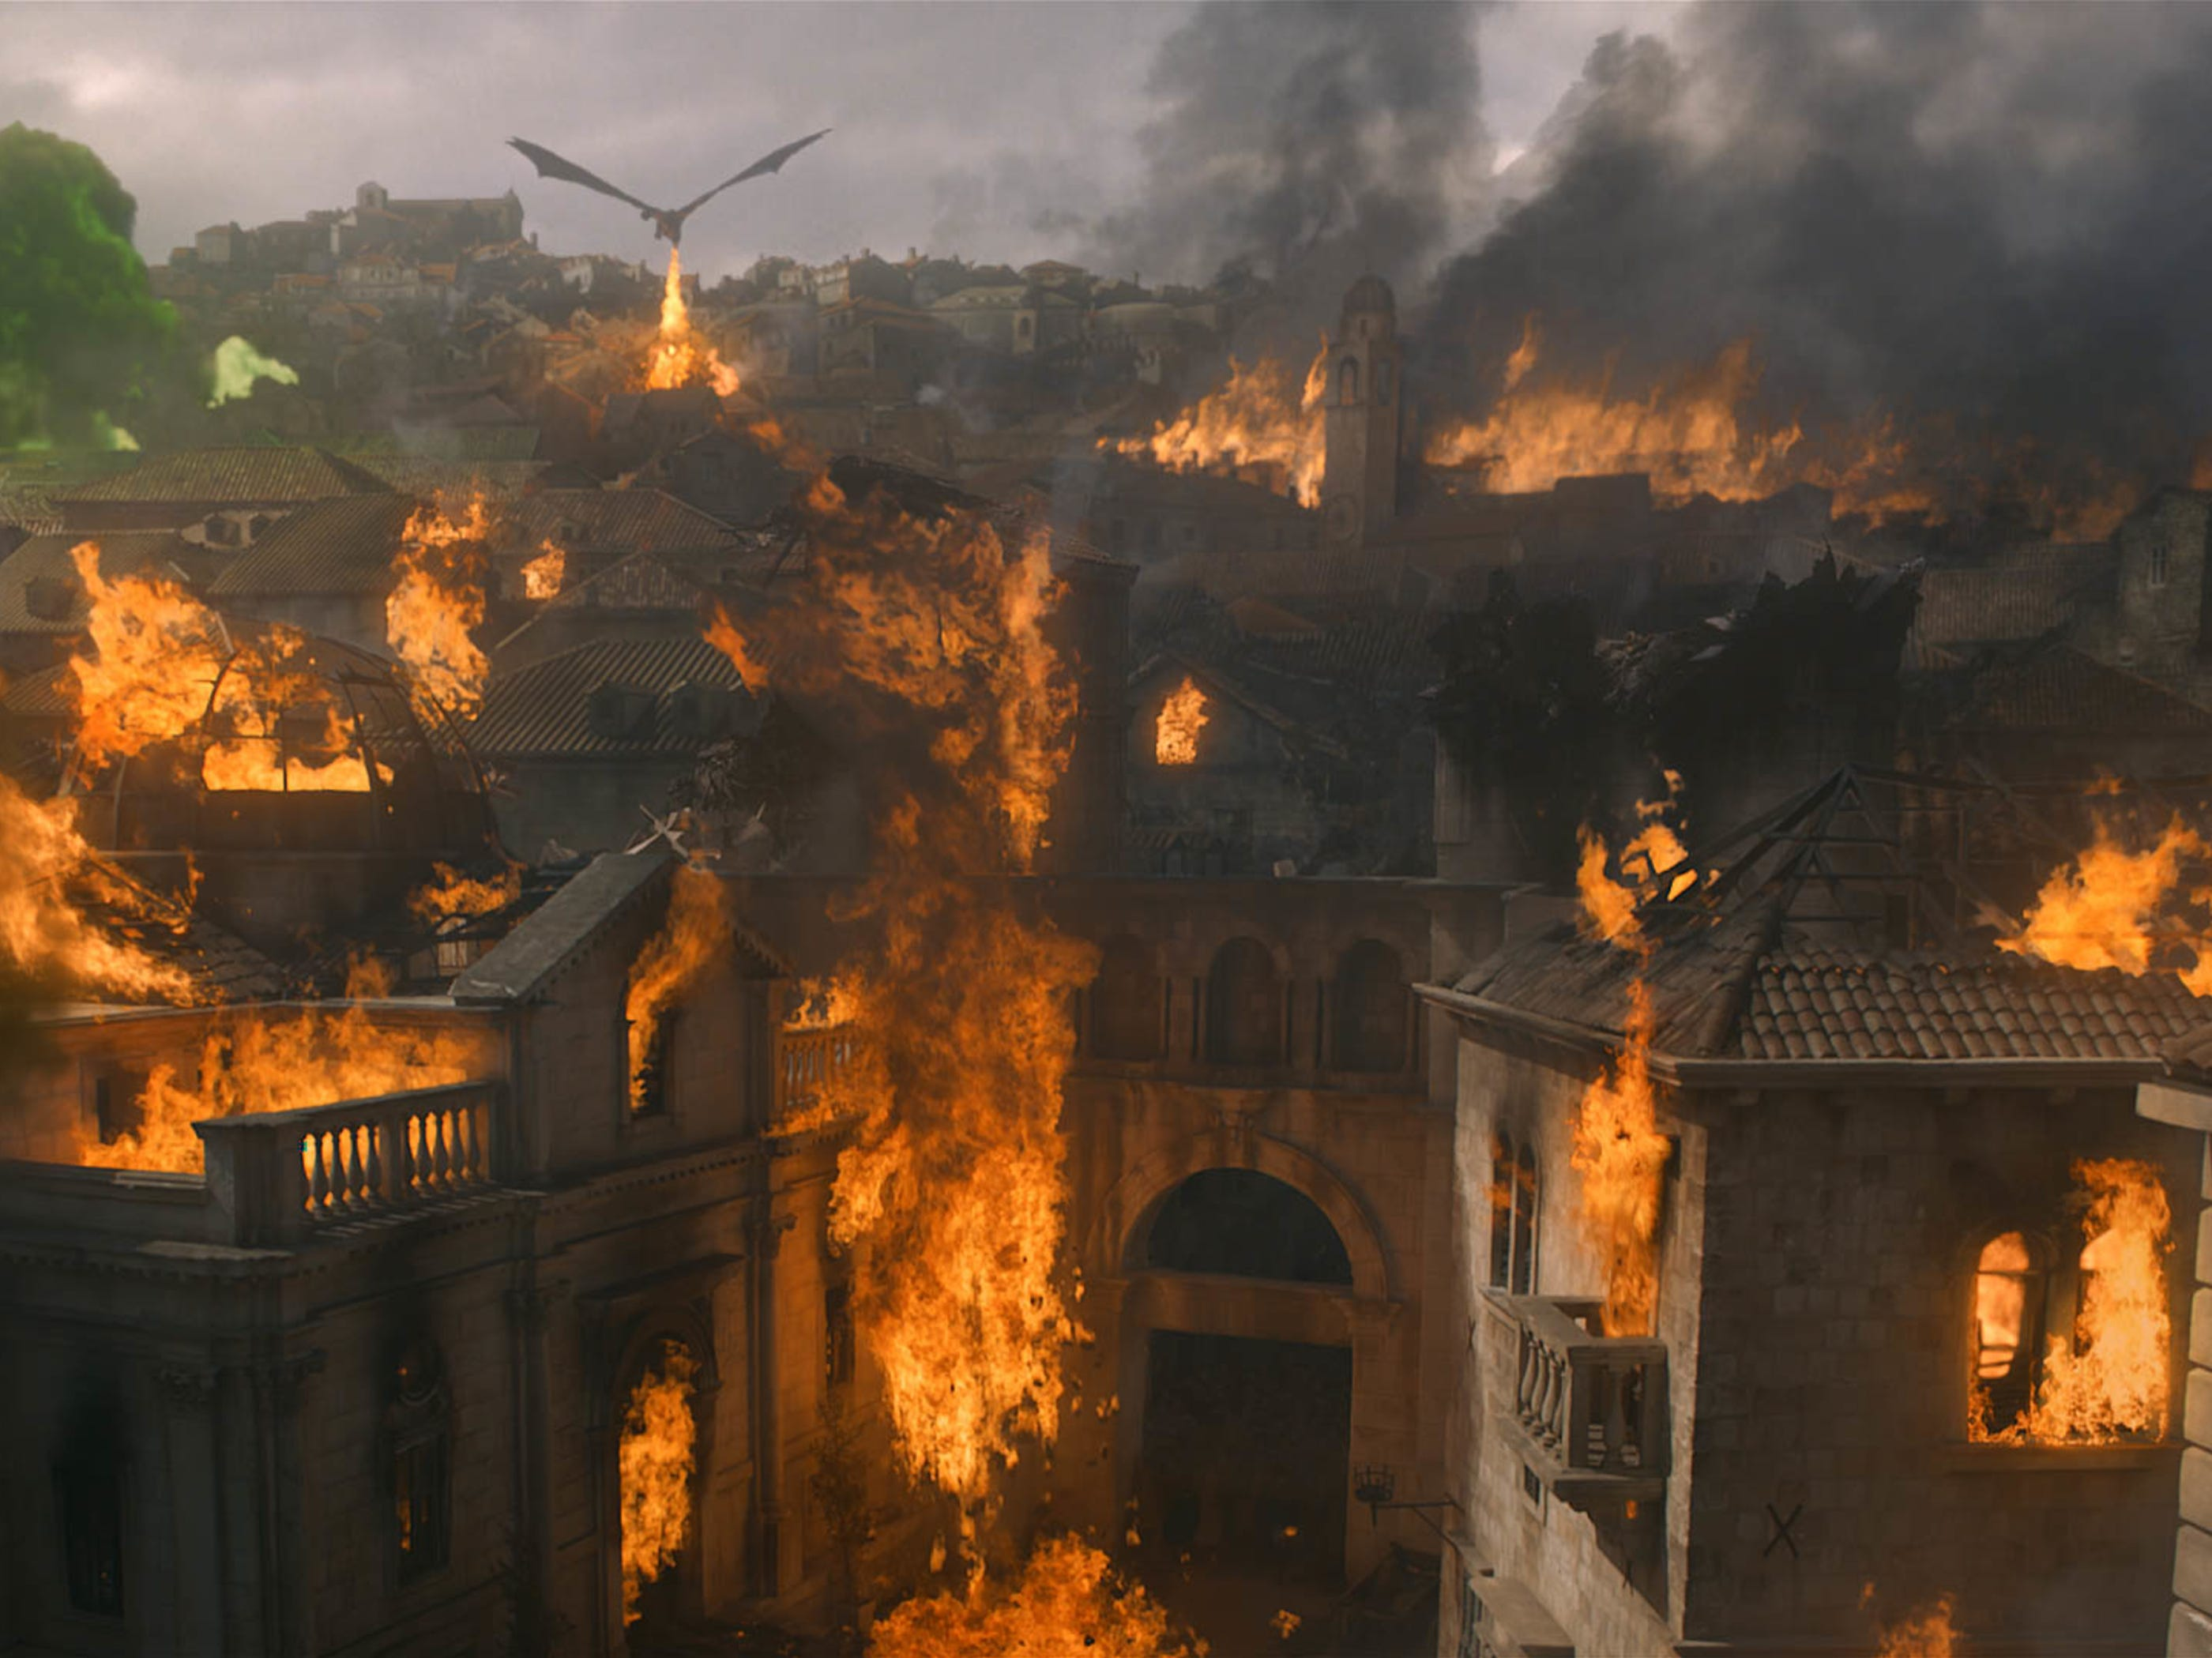 Drogon lays waste to much of King's landing.